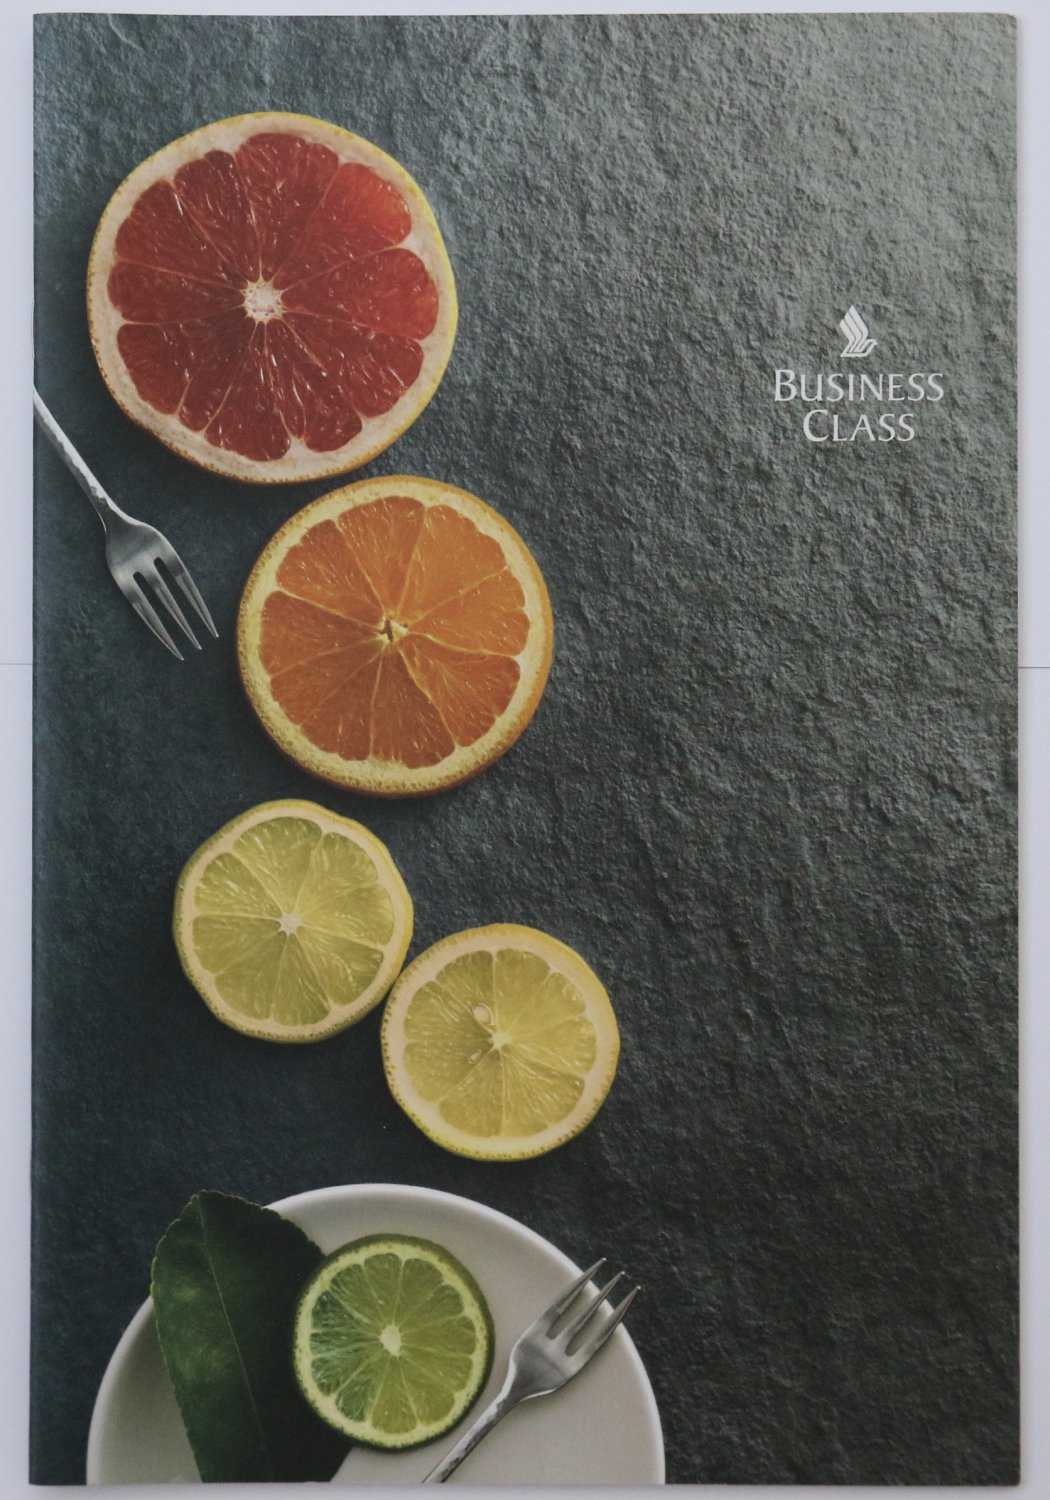 Singapore Airlines SQ361 Business Class Airline Menu ARN - DME - SIN 08 2019 New